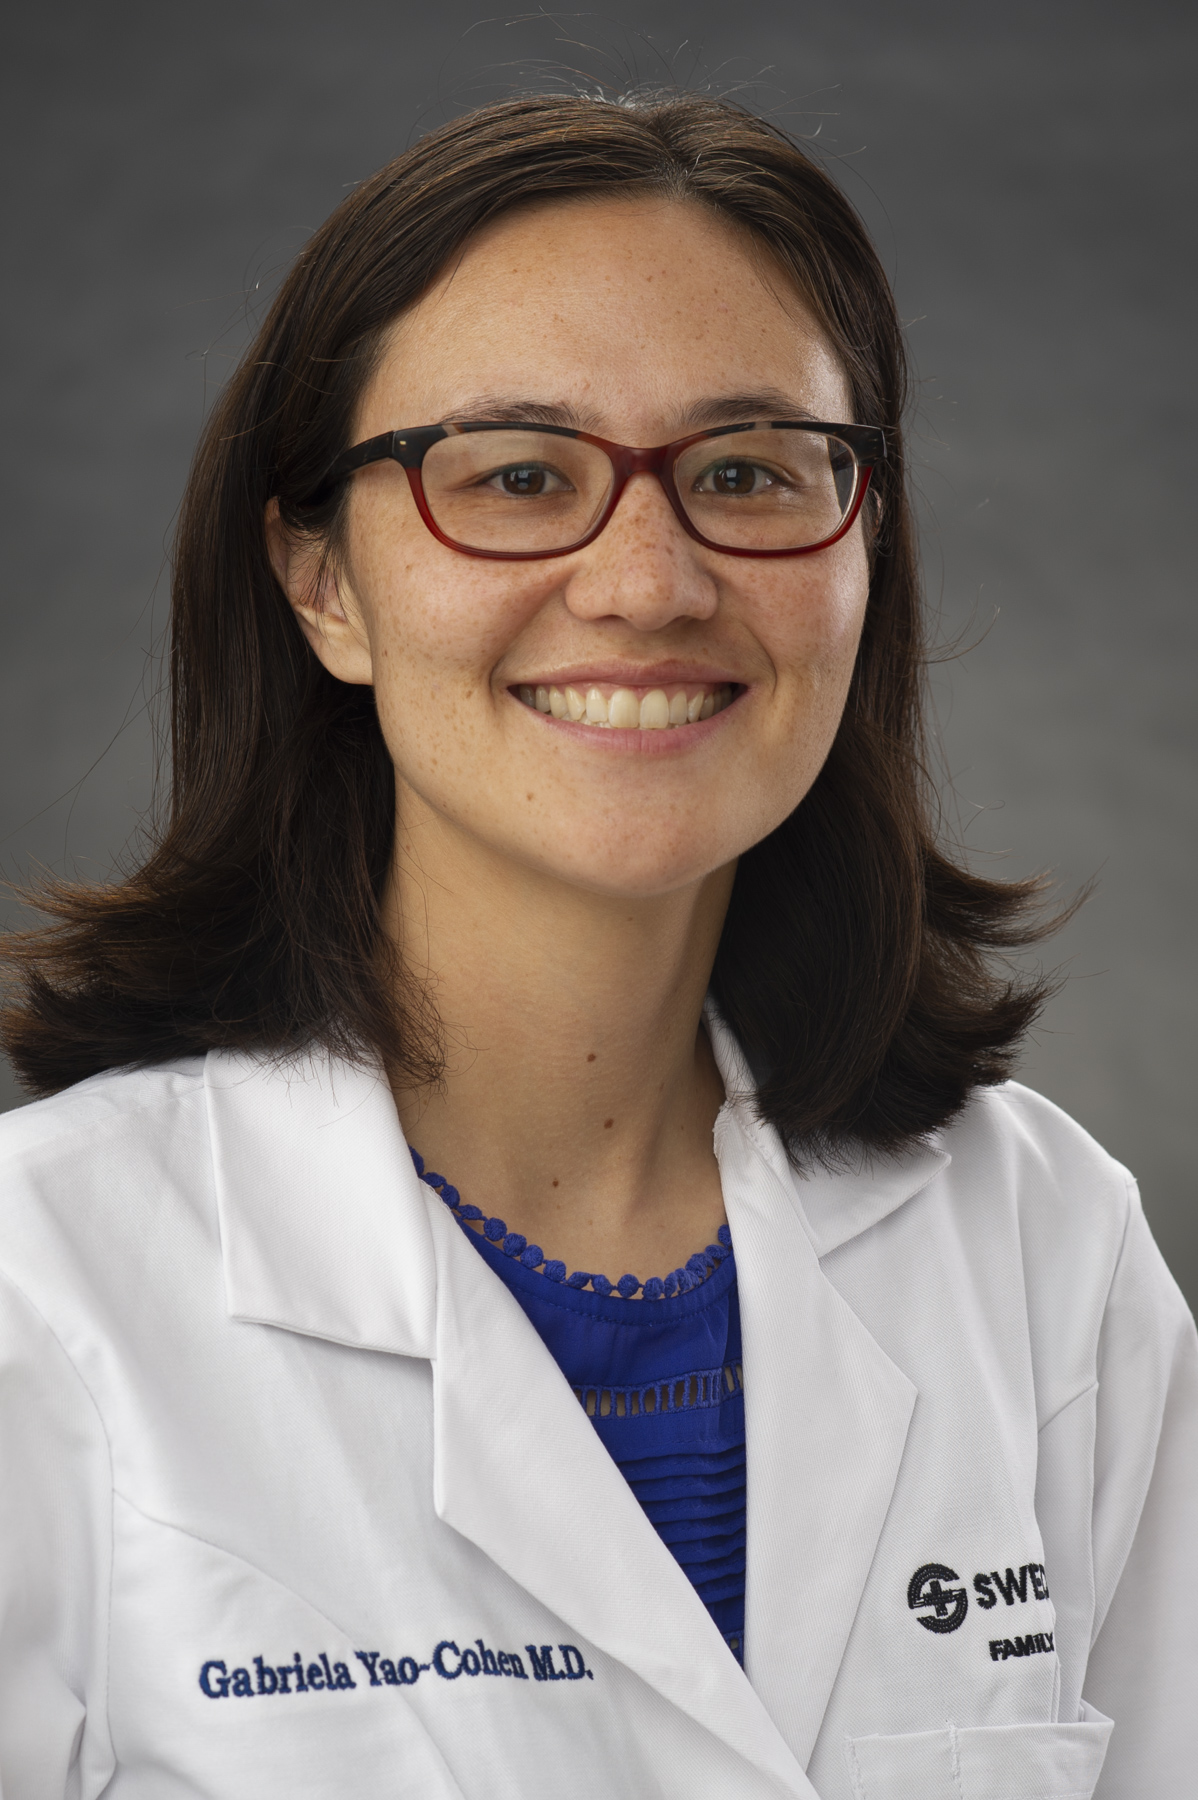 Gabriela Yao-Cohen MD-6822 for Print.jpg